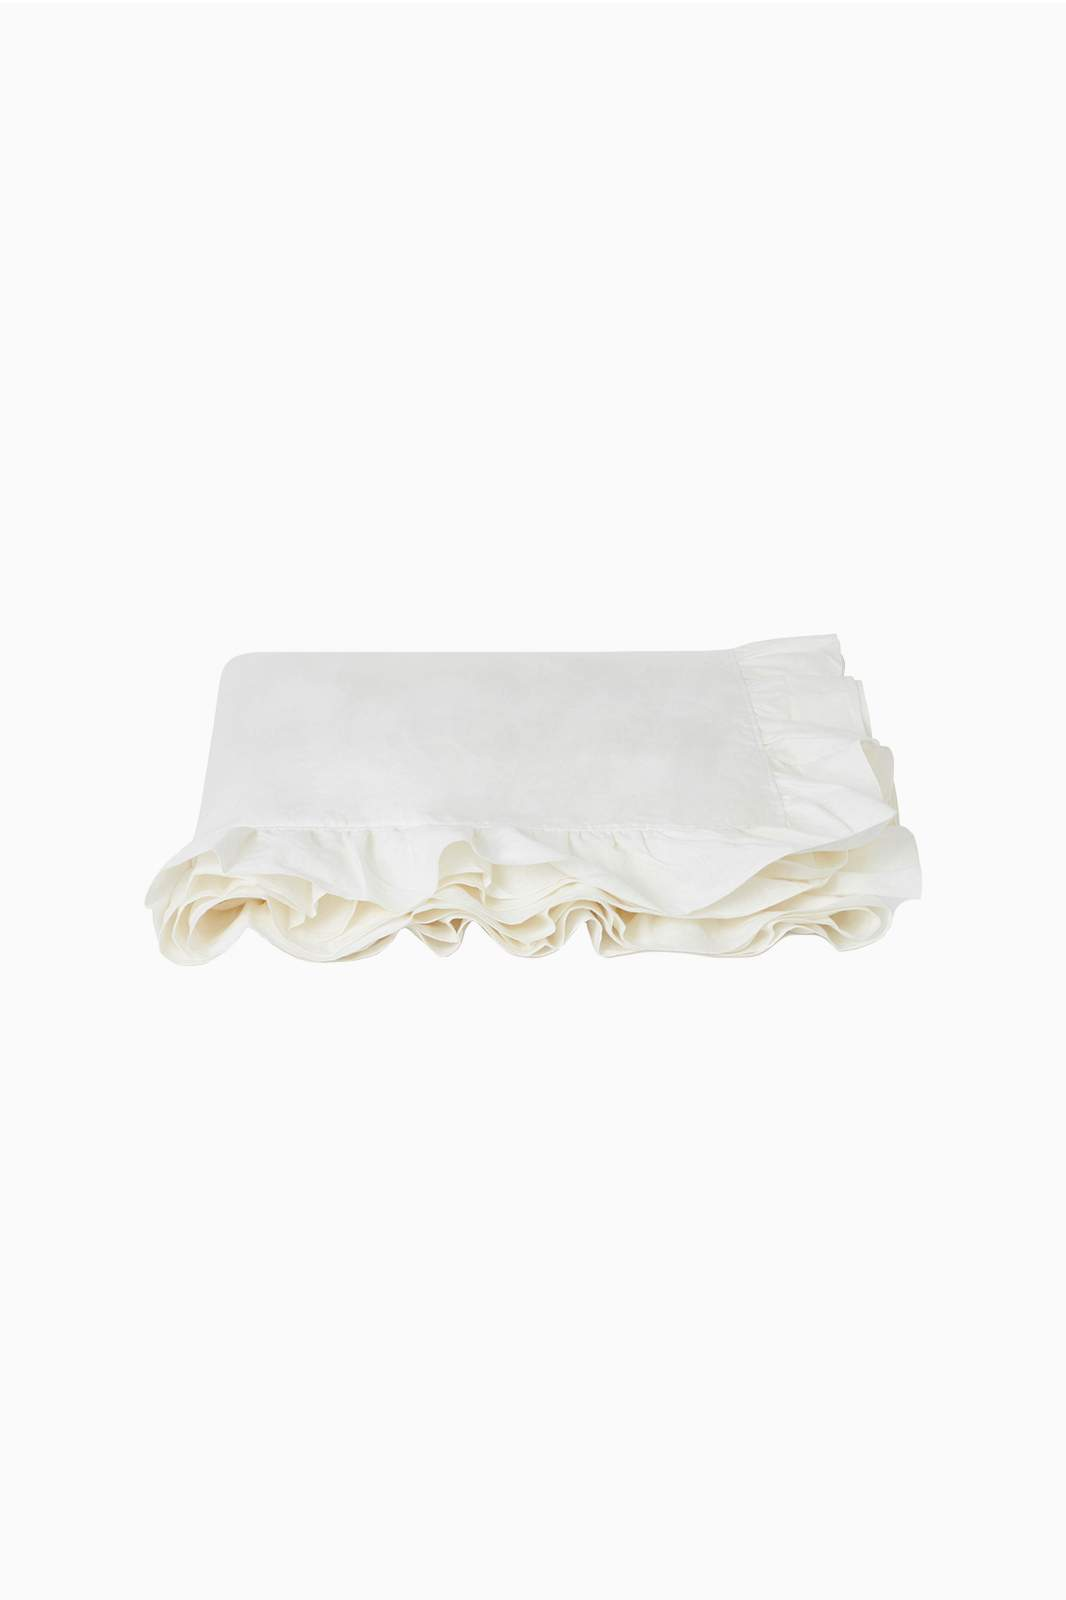 arkitaip Bedding 180 x 260cm / White The Ruffled Casita Linen Flat Sheet in White